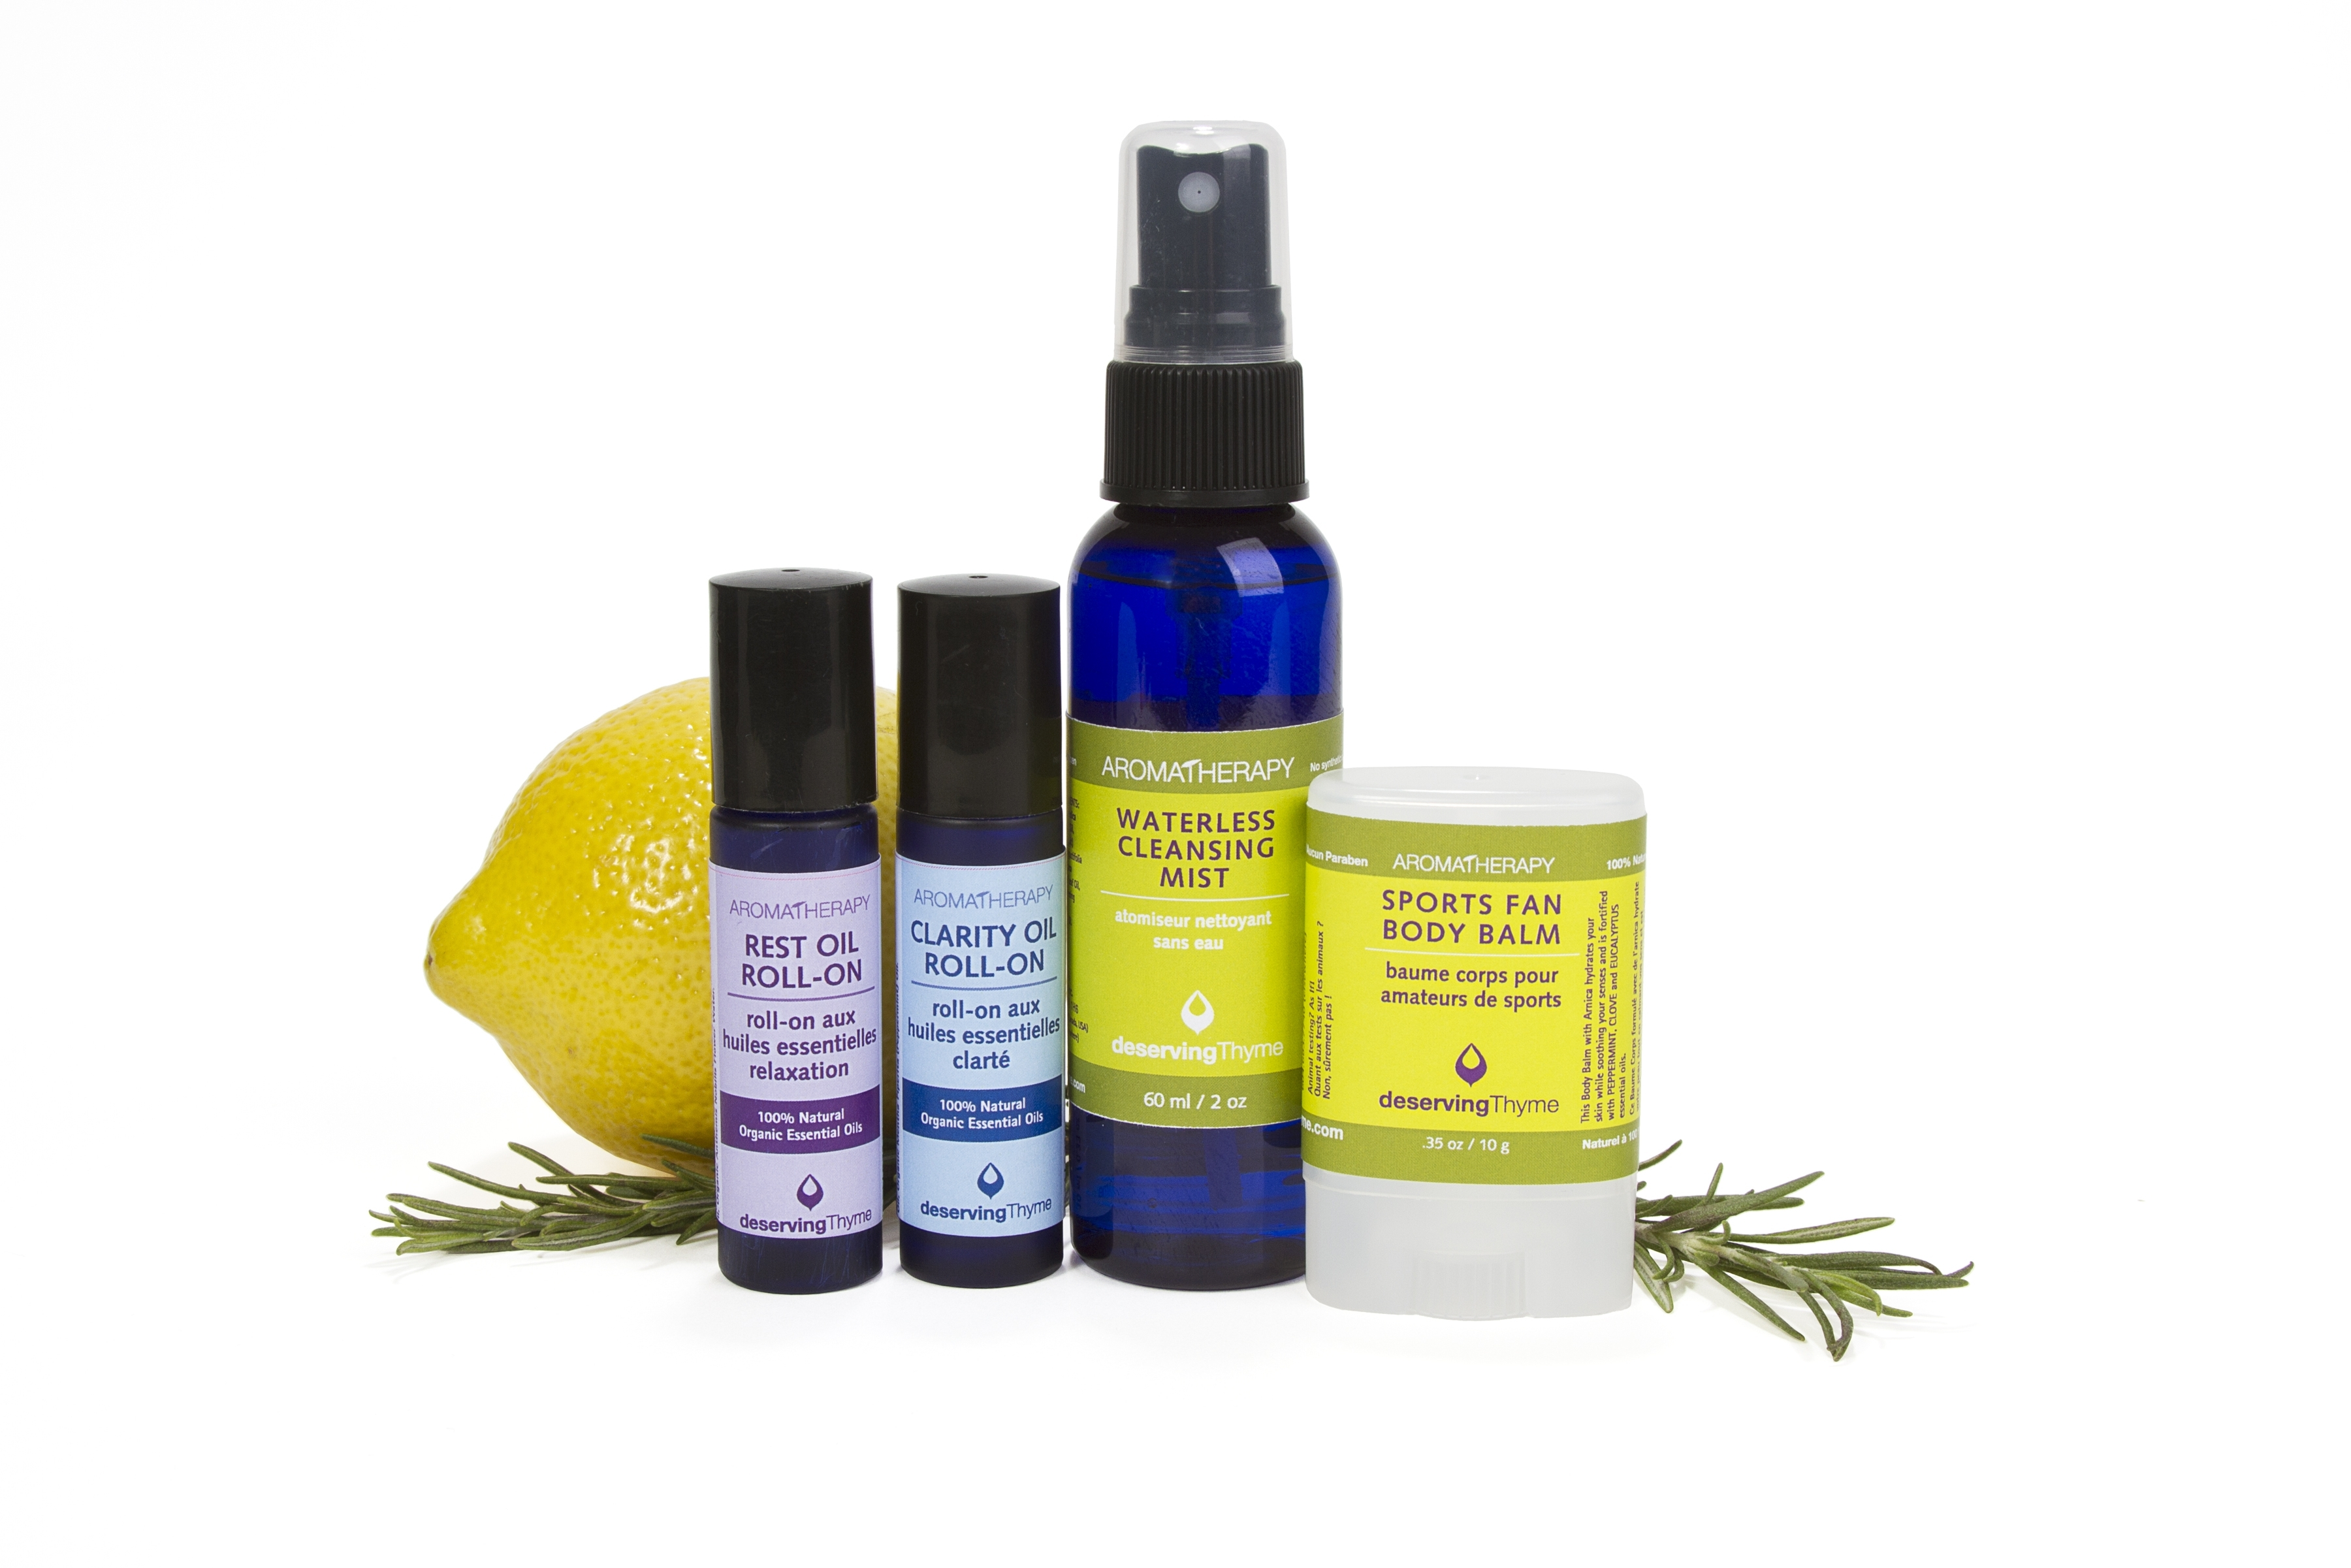 Deserving Thyme Launches Line of 100% Natural Aromatherapy Wellness Roll-Ons, MASSAGE Magazine